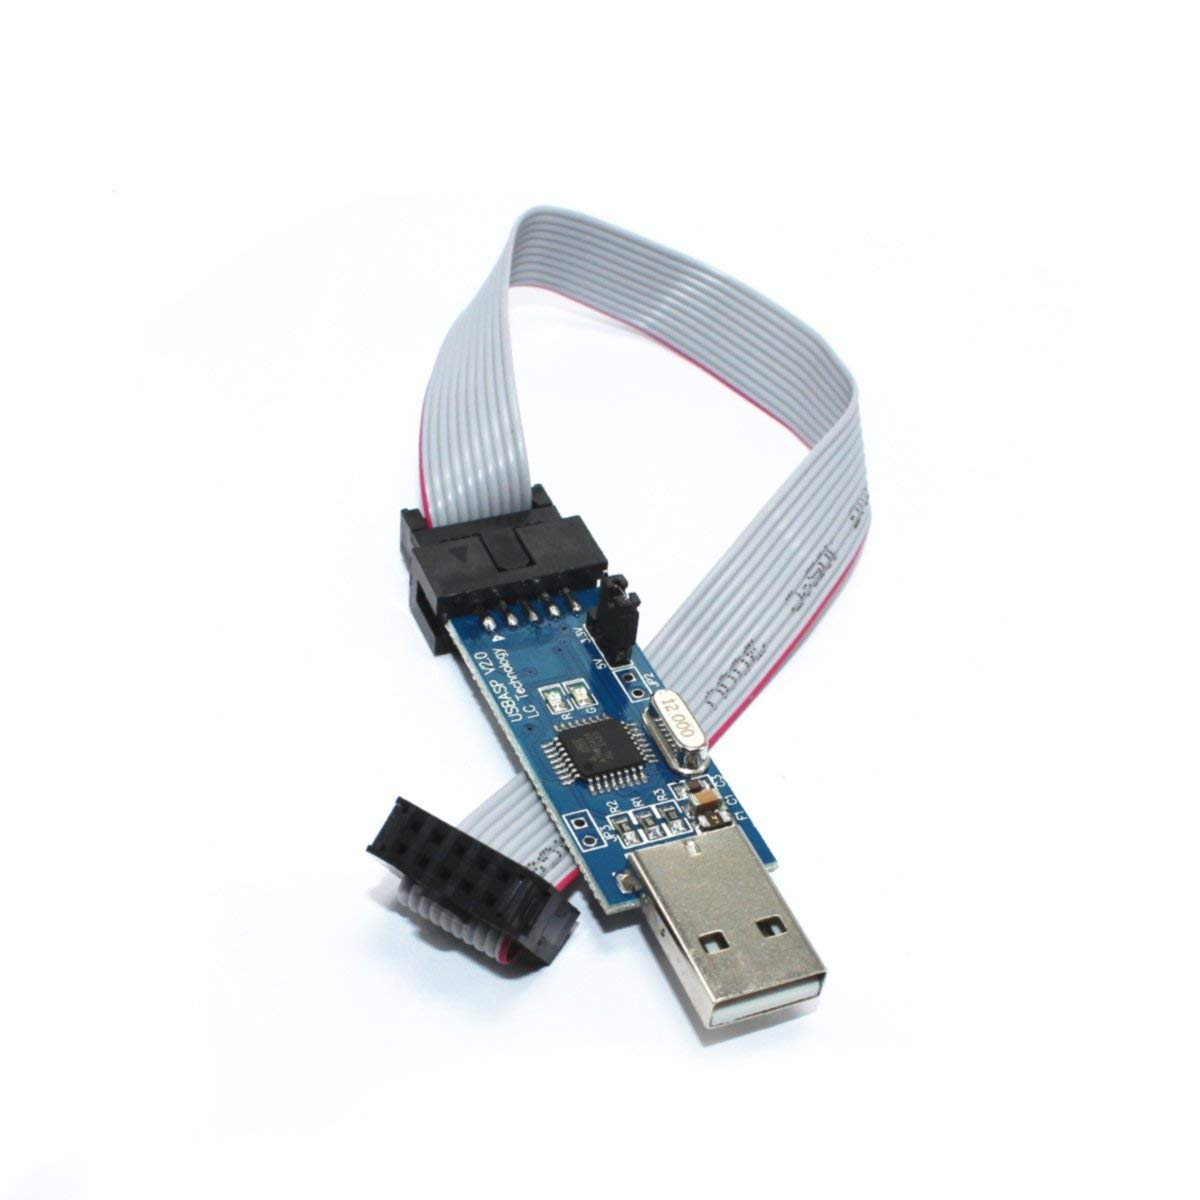 51 AVR ATMEGA8 Programmer USBasp USB ISP 10 Pin USB Programmer 3.3V/5V with Cable